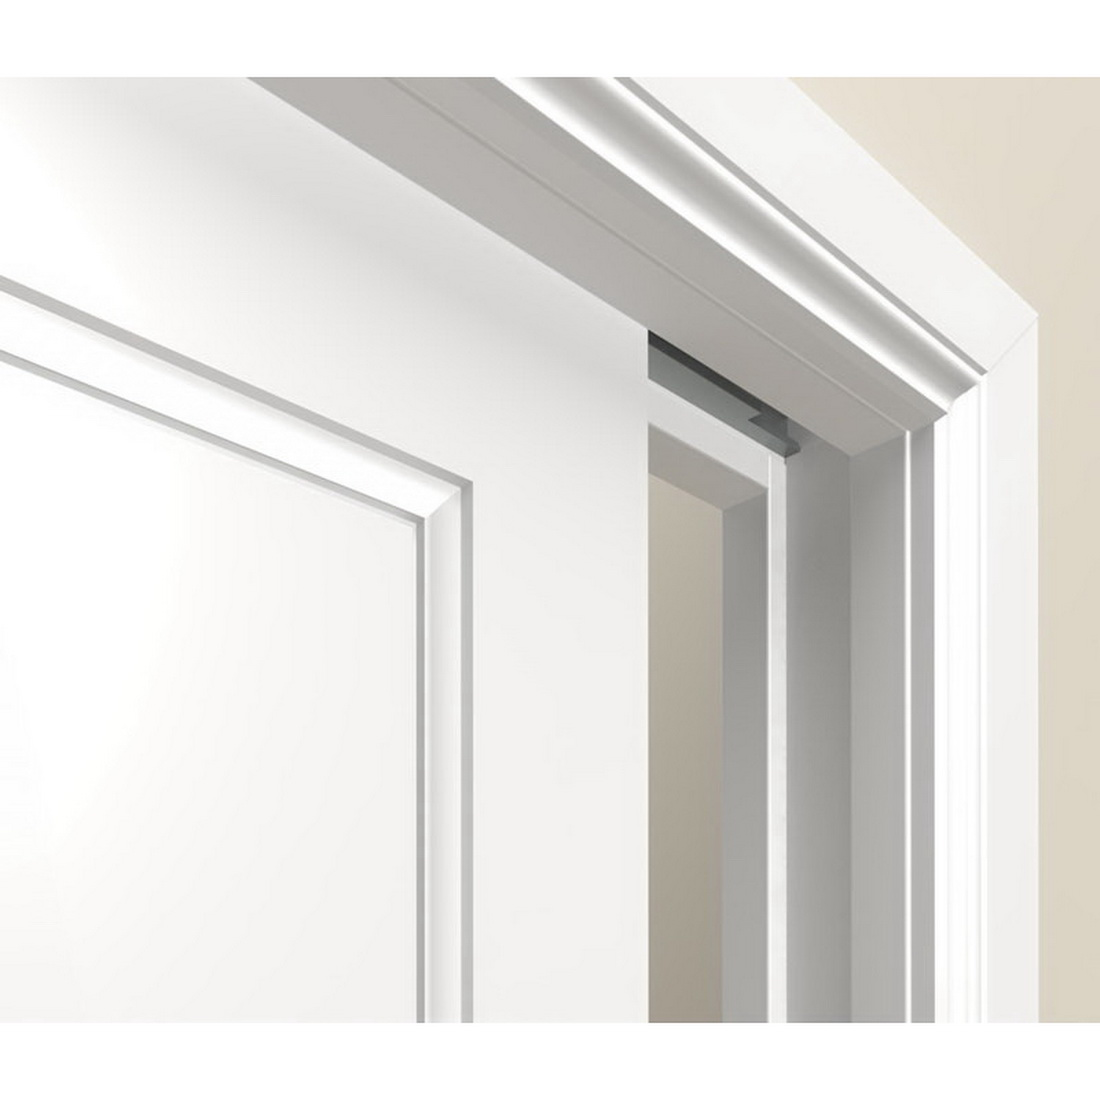 Sofstop Combo Architrave Jamb 1980 x 860 x 10mm Clear Pine